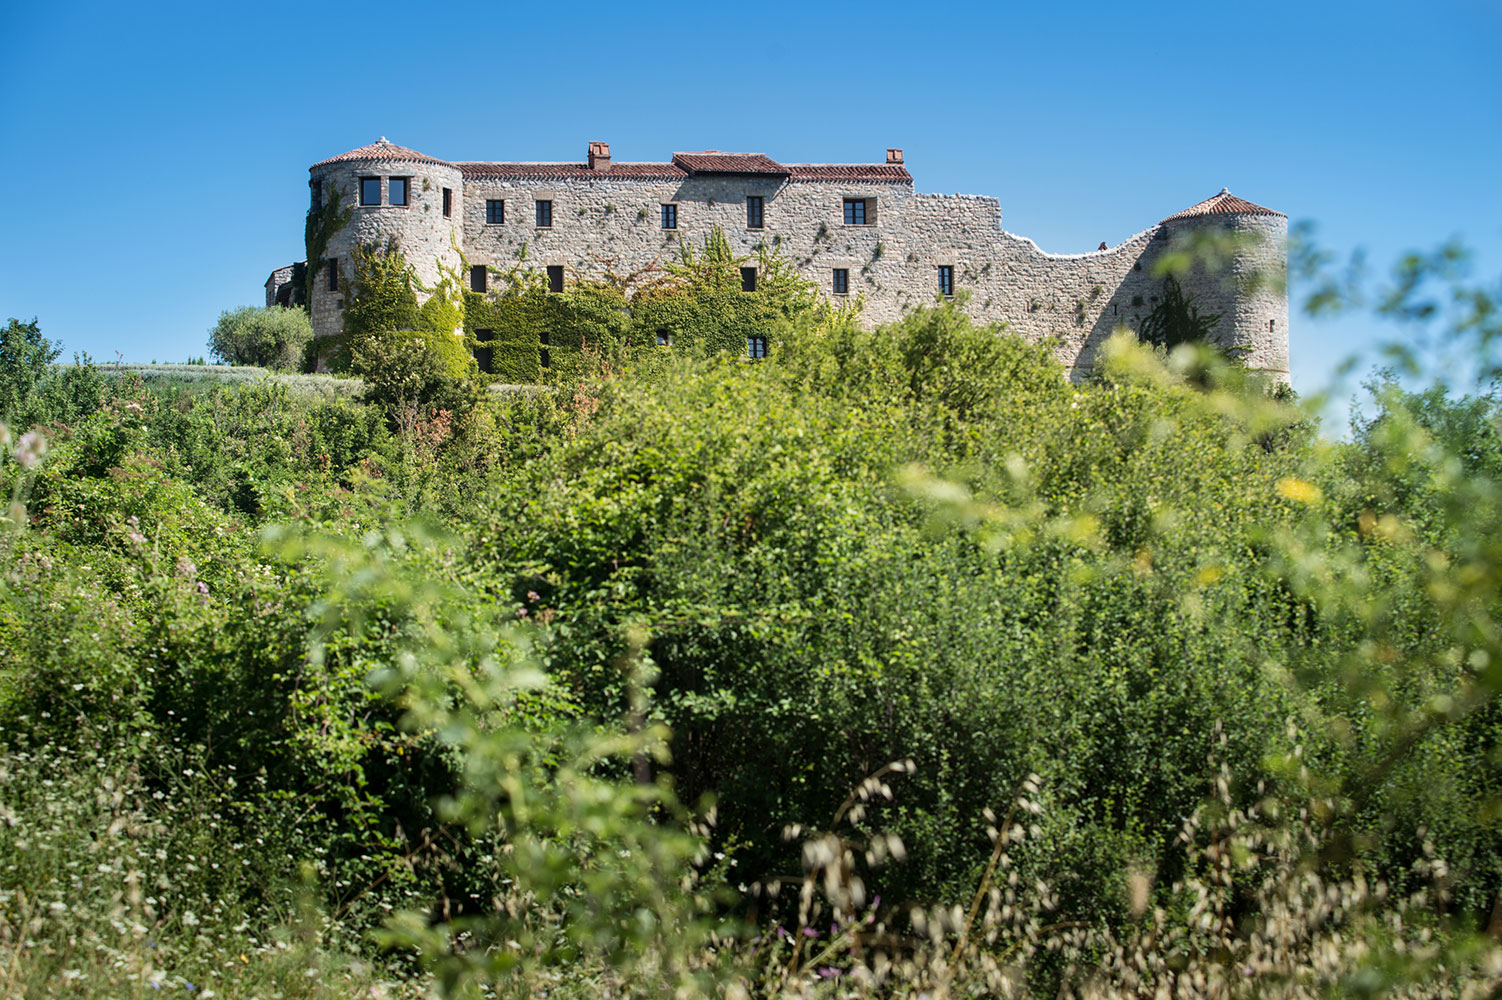 Castello Di Procopio Outdoors 15